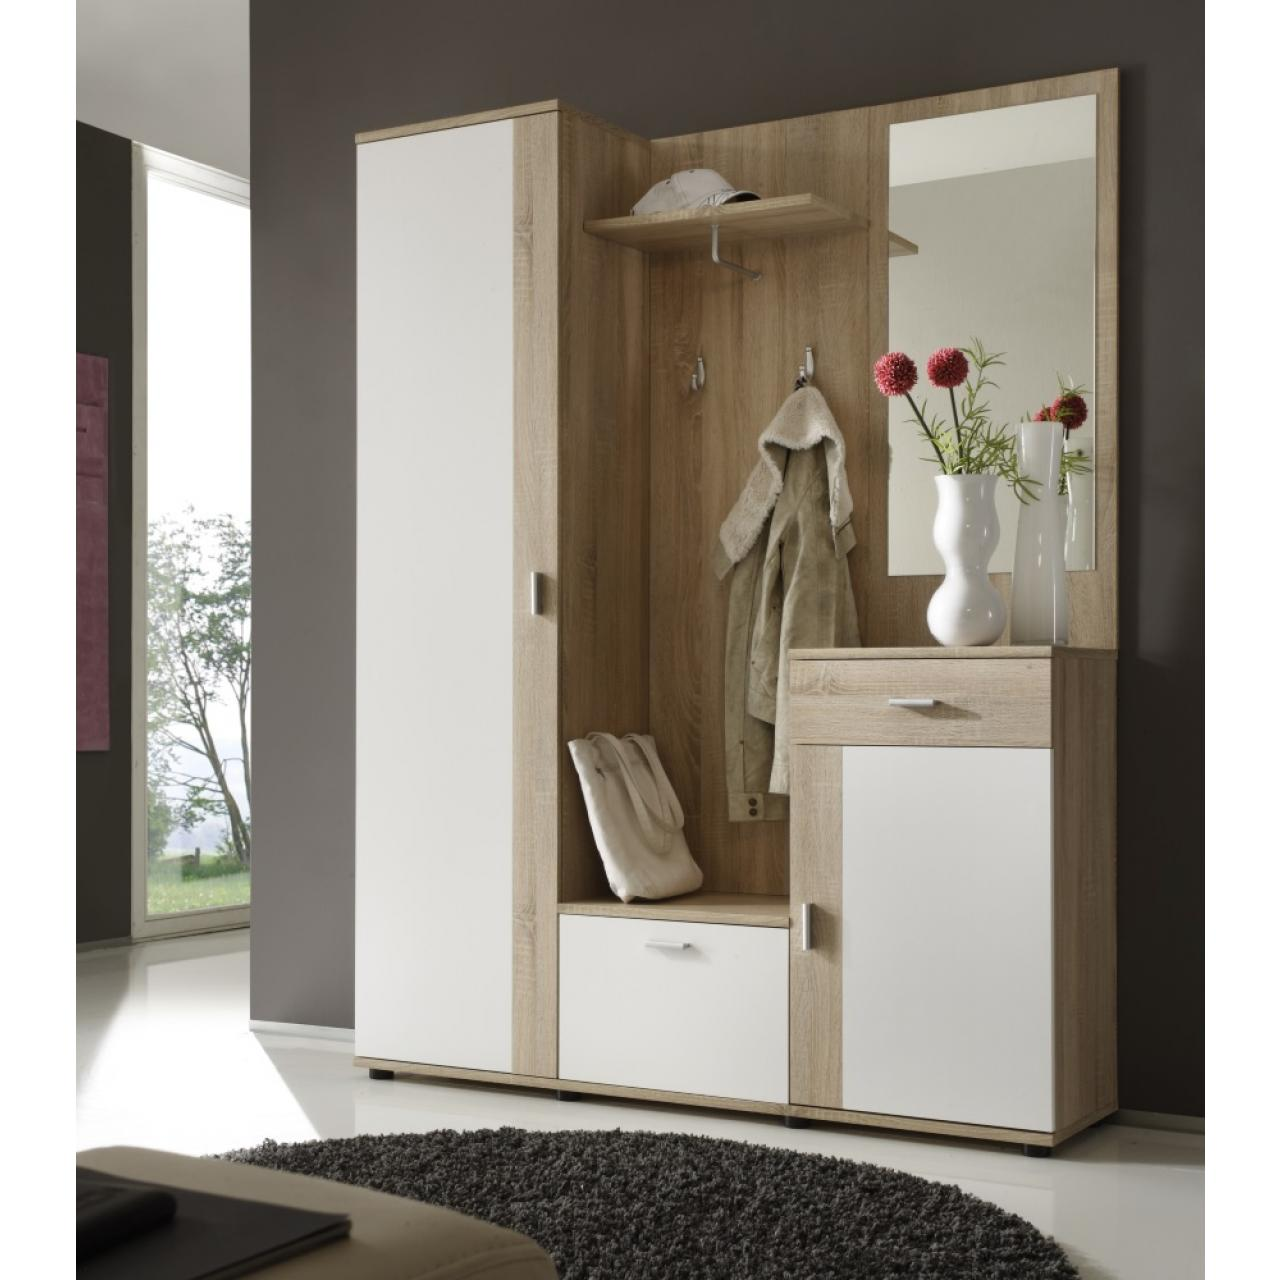 garderobe patent garderoben wohnen m bel j hnichen. Black Bedroom Furniture Sets. Home Design Ideas